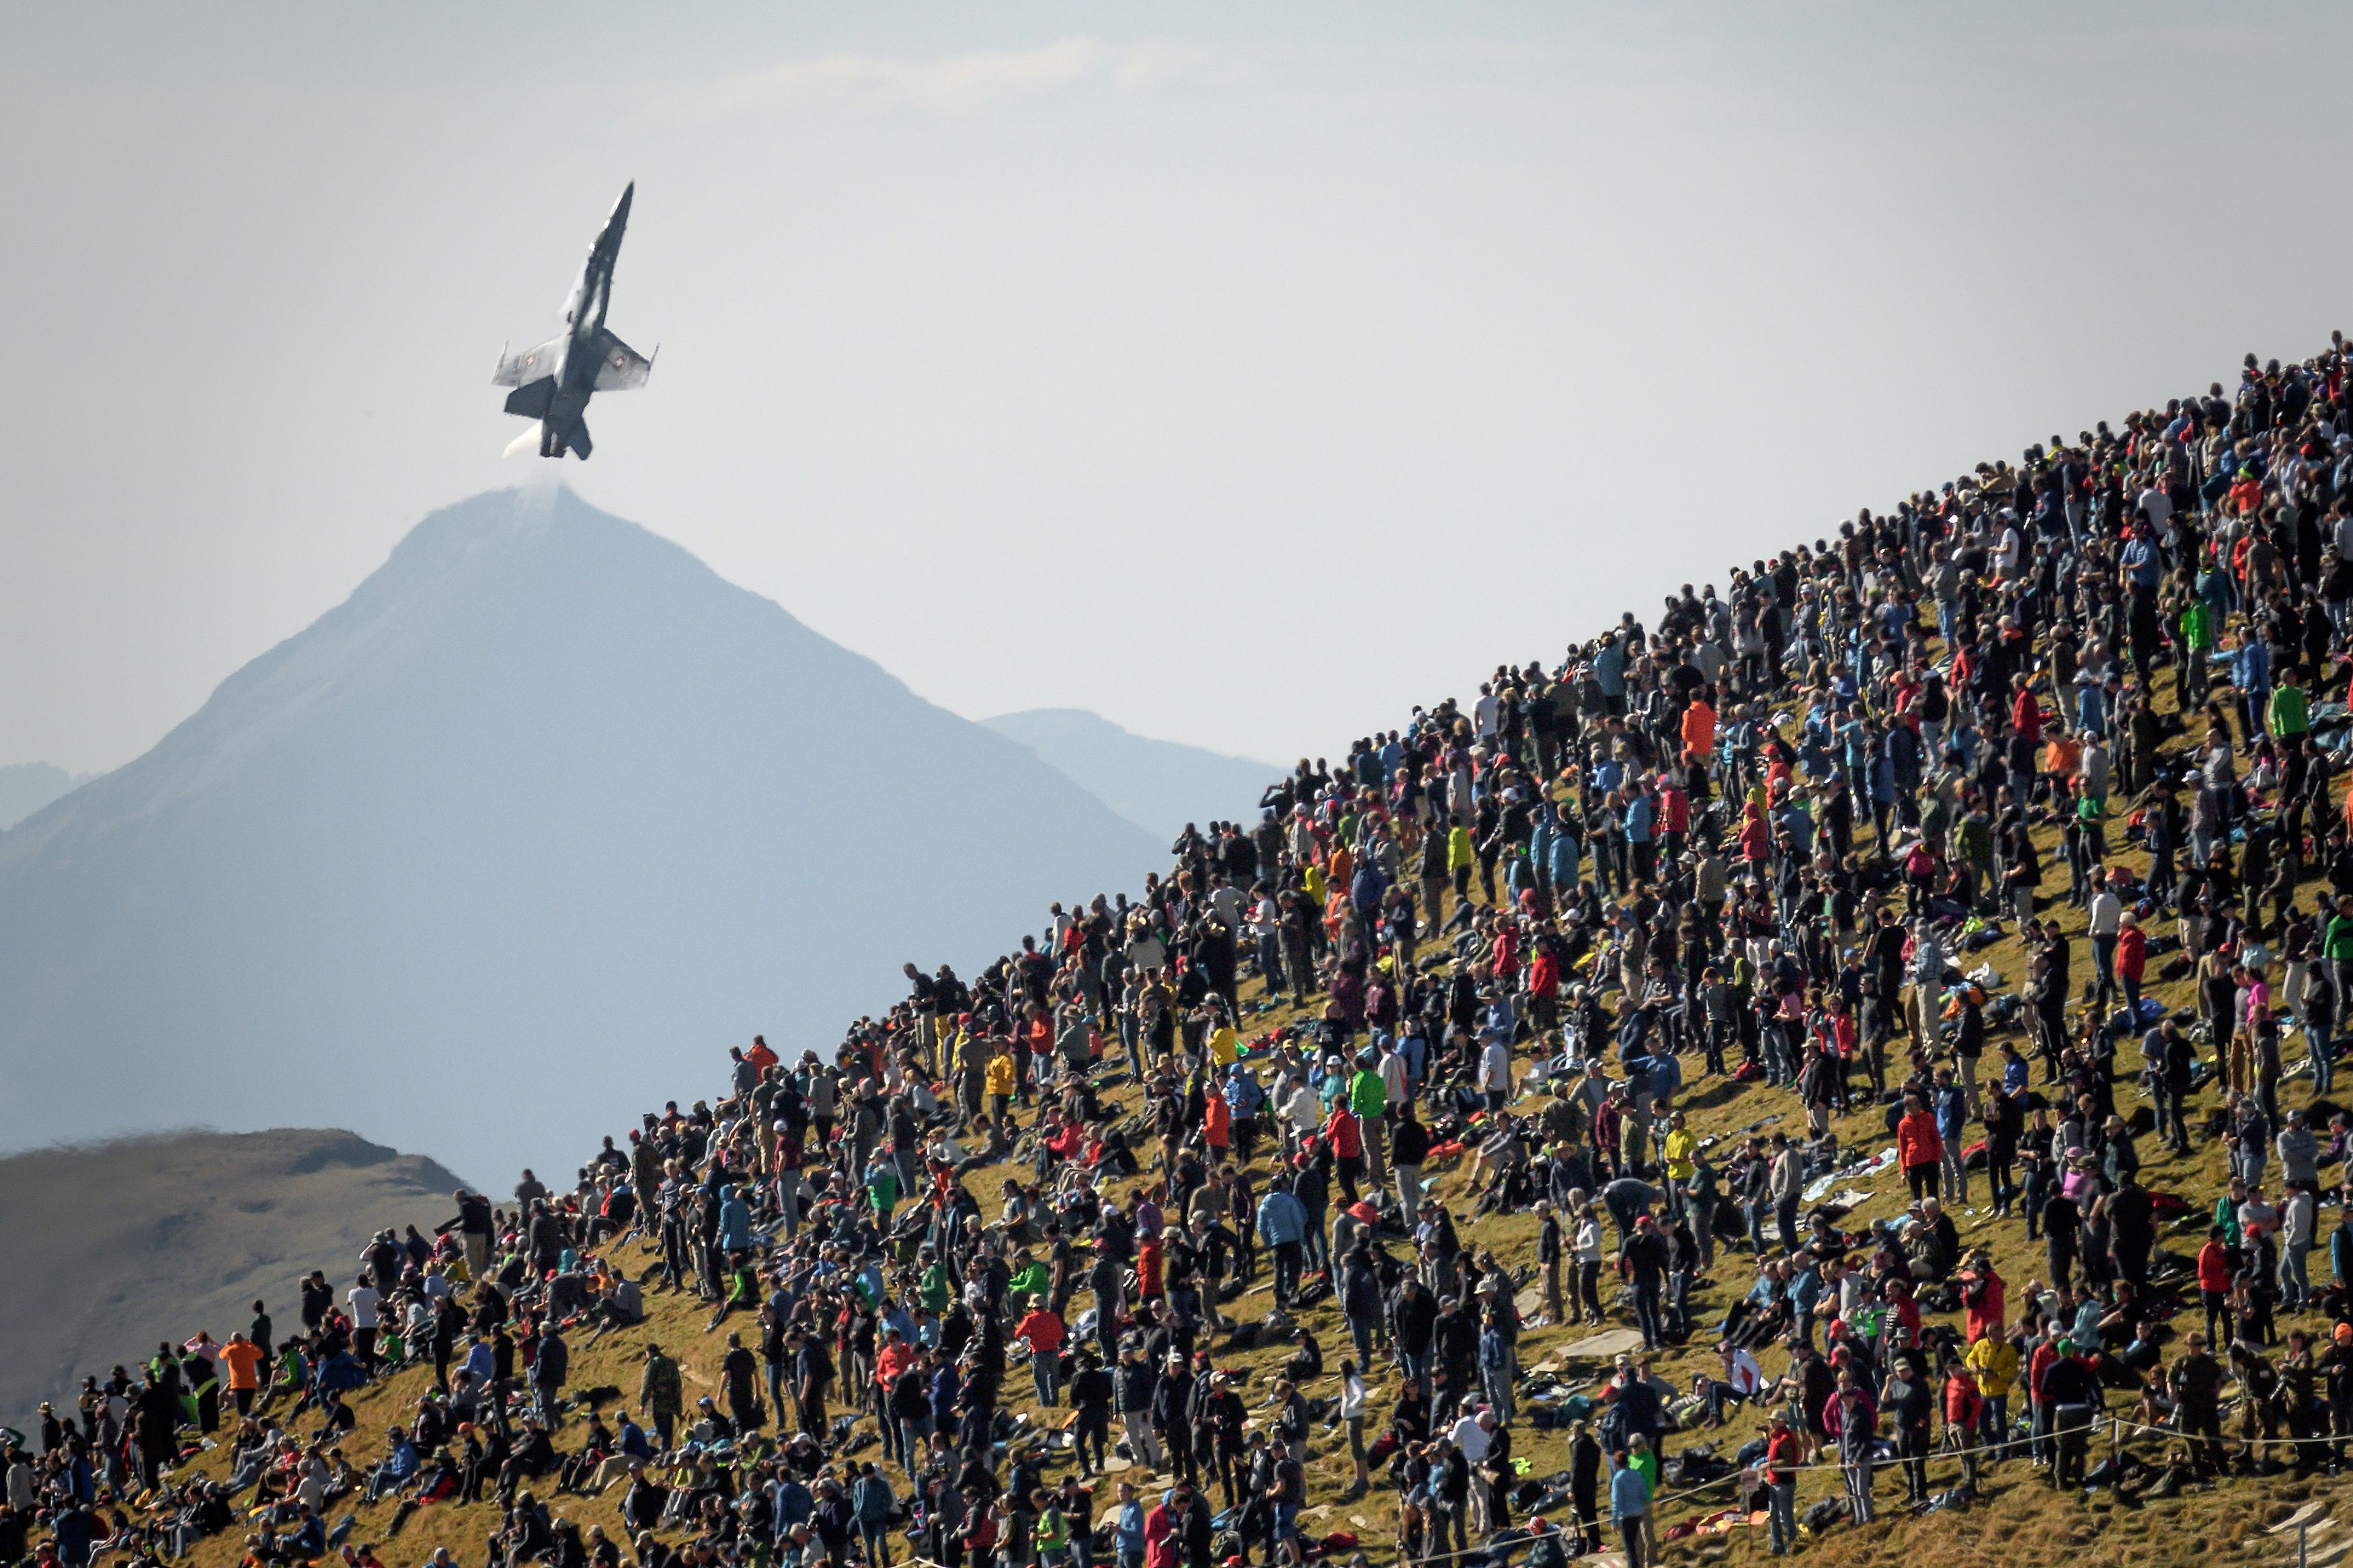 An F/A-18 Hornet flies over spectators during the annual live-fire event of the Swiss Air Force at the Axalp, over Brienz in the Bernese Alps, on Oct. 10, 2018. The planes are up for replacement under the Air 2030 program. (Fabrice Coffrinie/AFP via Getty Images)